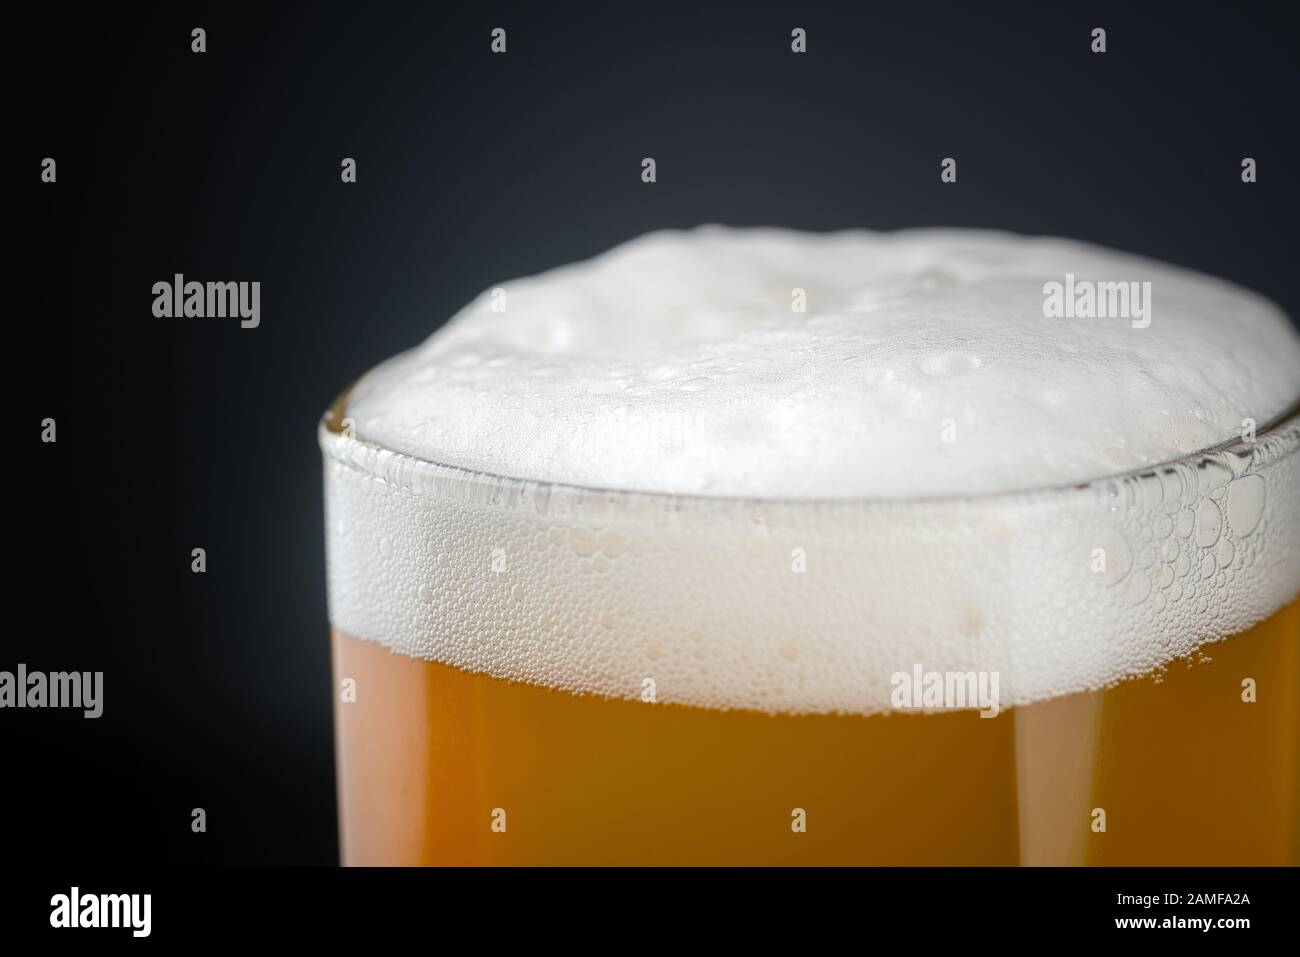 Fresh and cold glass craft beer with white foam on top on black background with space for text. Foamy wheat or lager beer on dark background Stock Photo